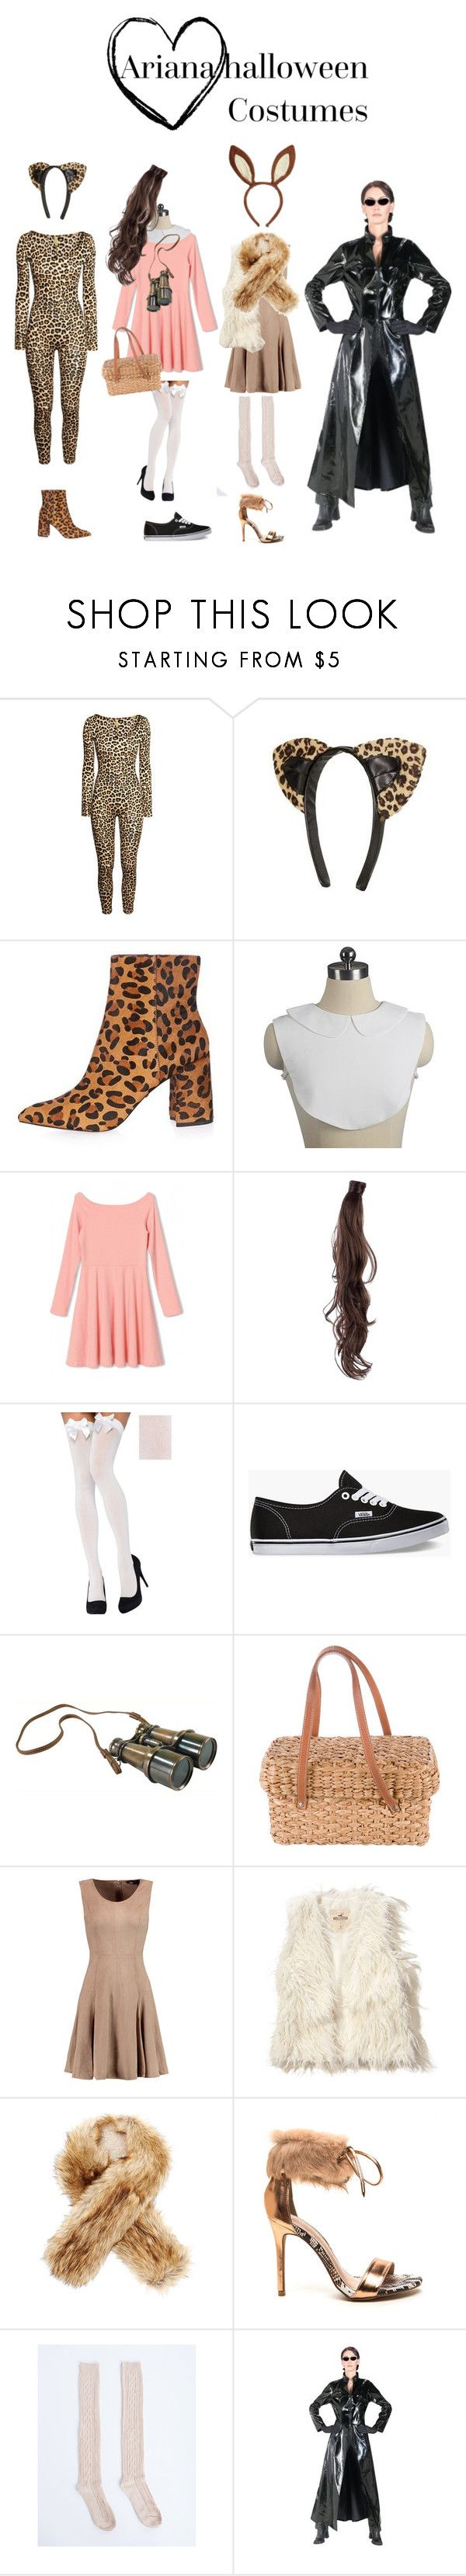 """Ariana Halloween costumes"" by screamqueengabi ❤ liked on Polyvore featuring H&M, Topshop, WithChic, Rapunzel Of Sweden, Vans, Authentic Models, Kate Spade, Halston Heritage, Hollister Co. and Buji Baja"